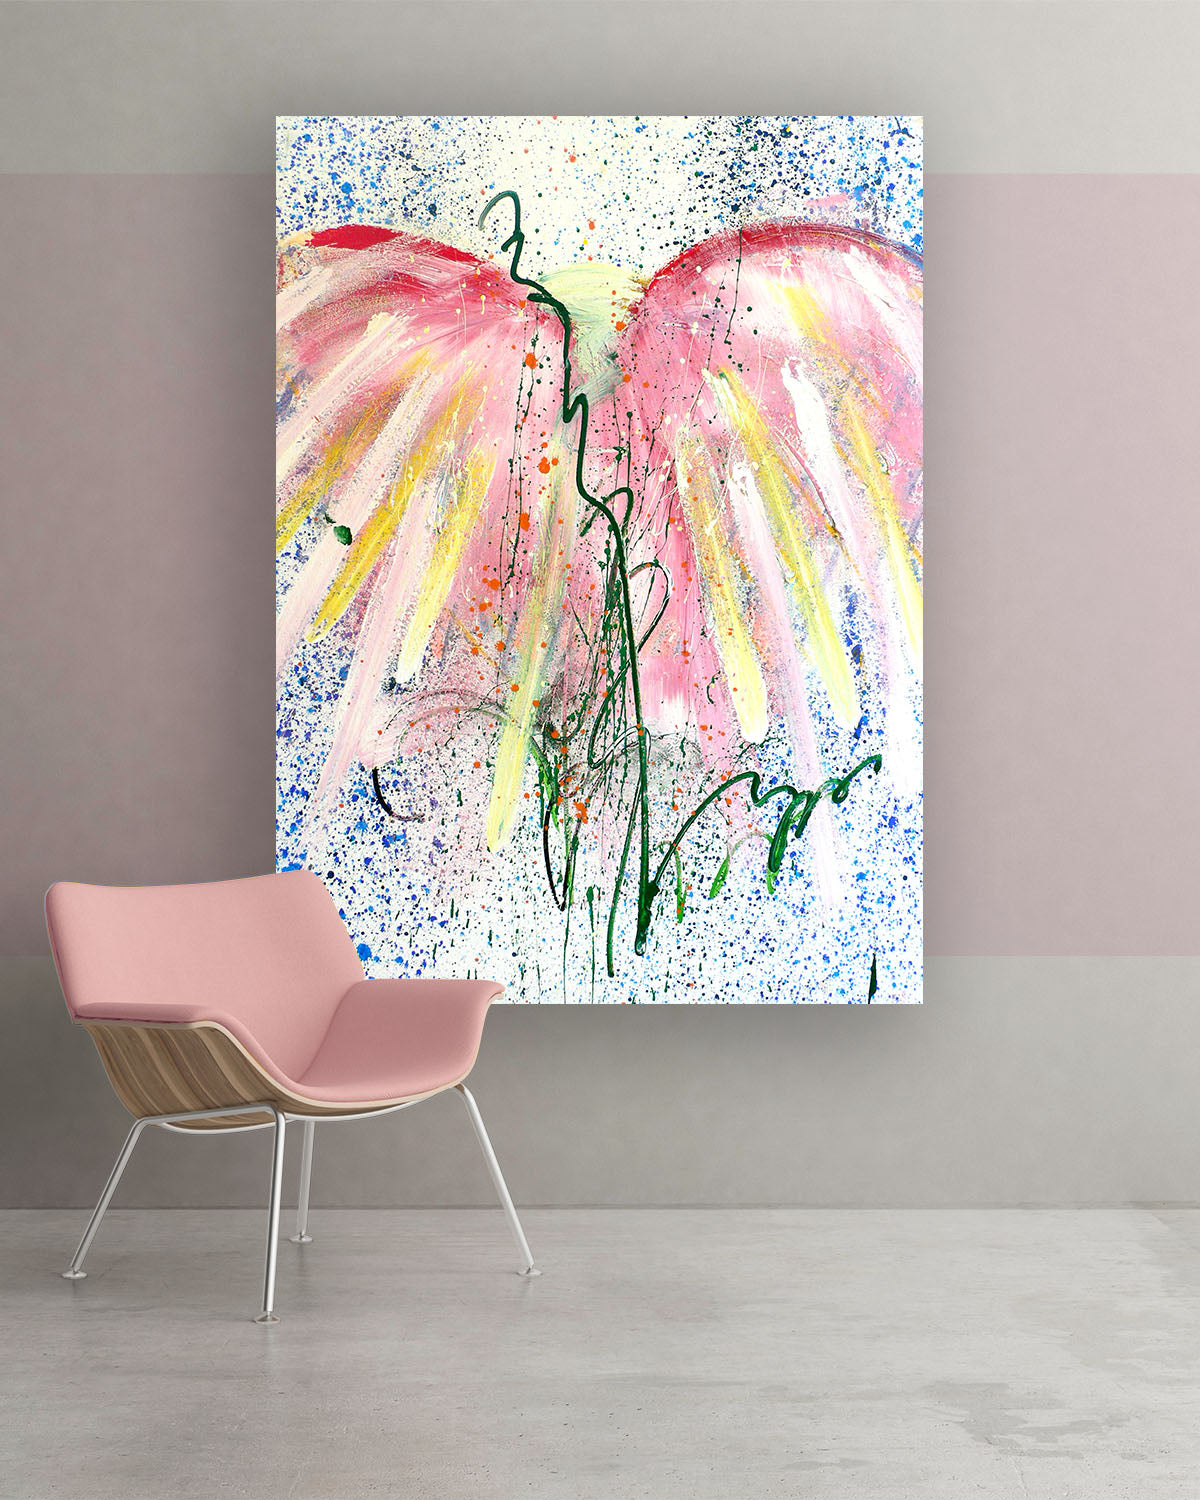 Dapple, Original Abstract Flower Art Painting by Lisa Marie Jones